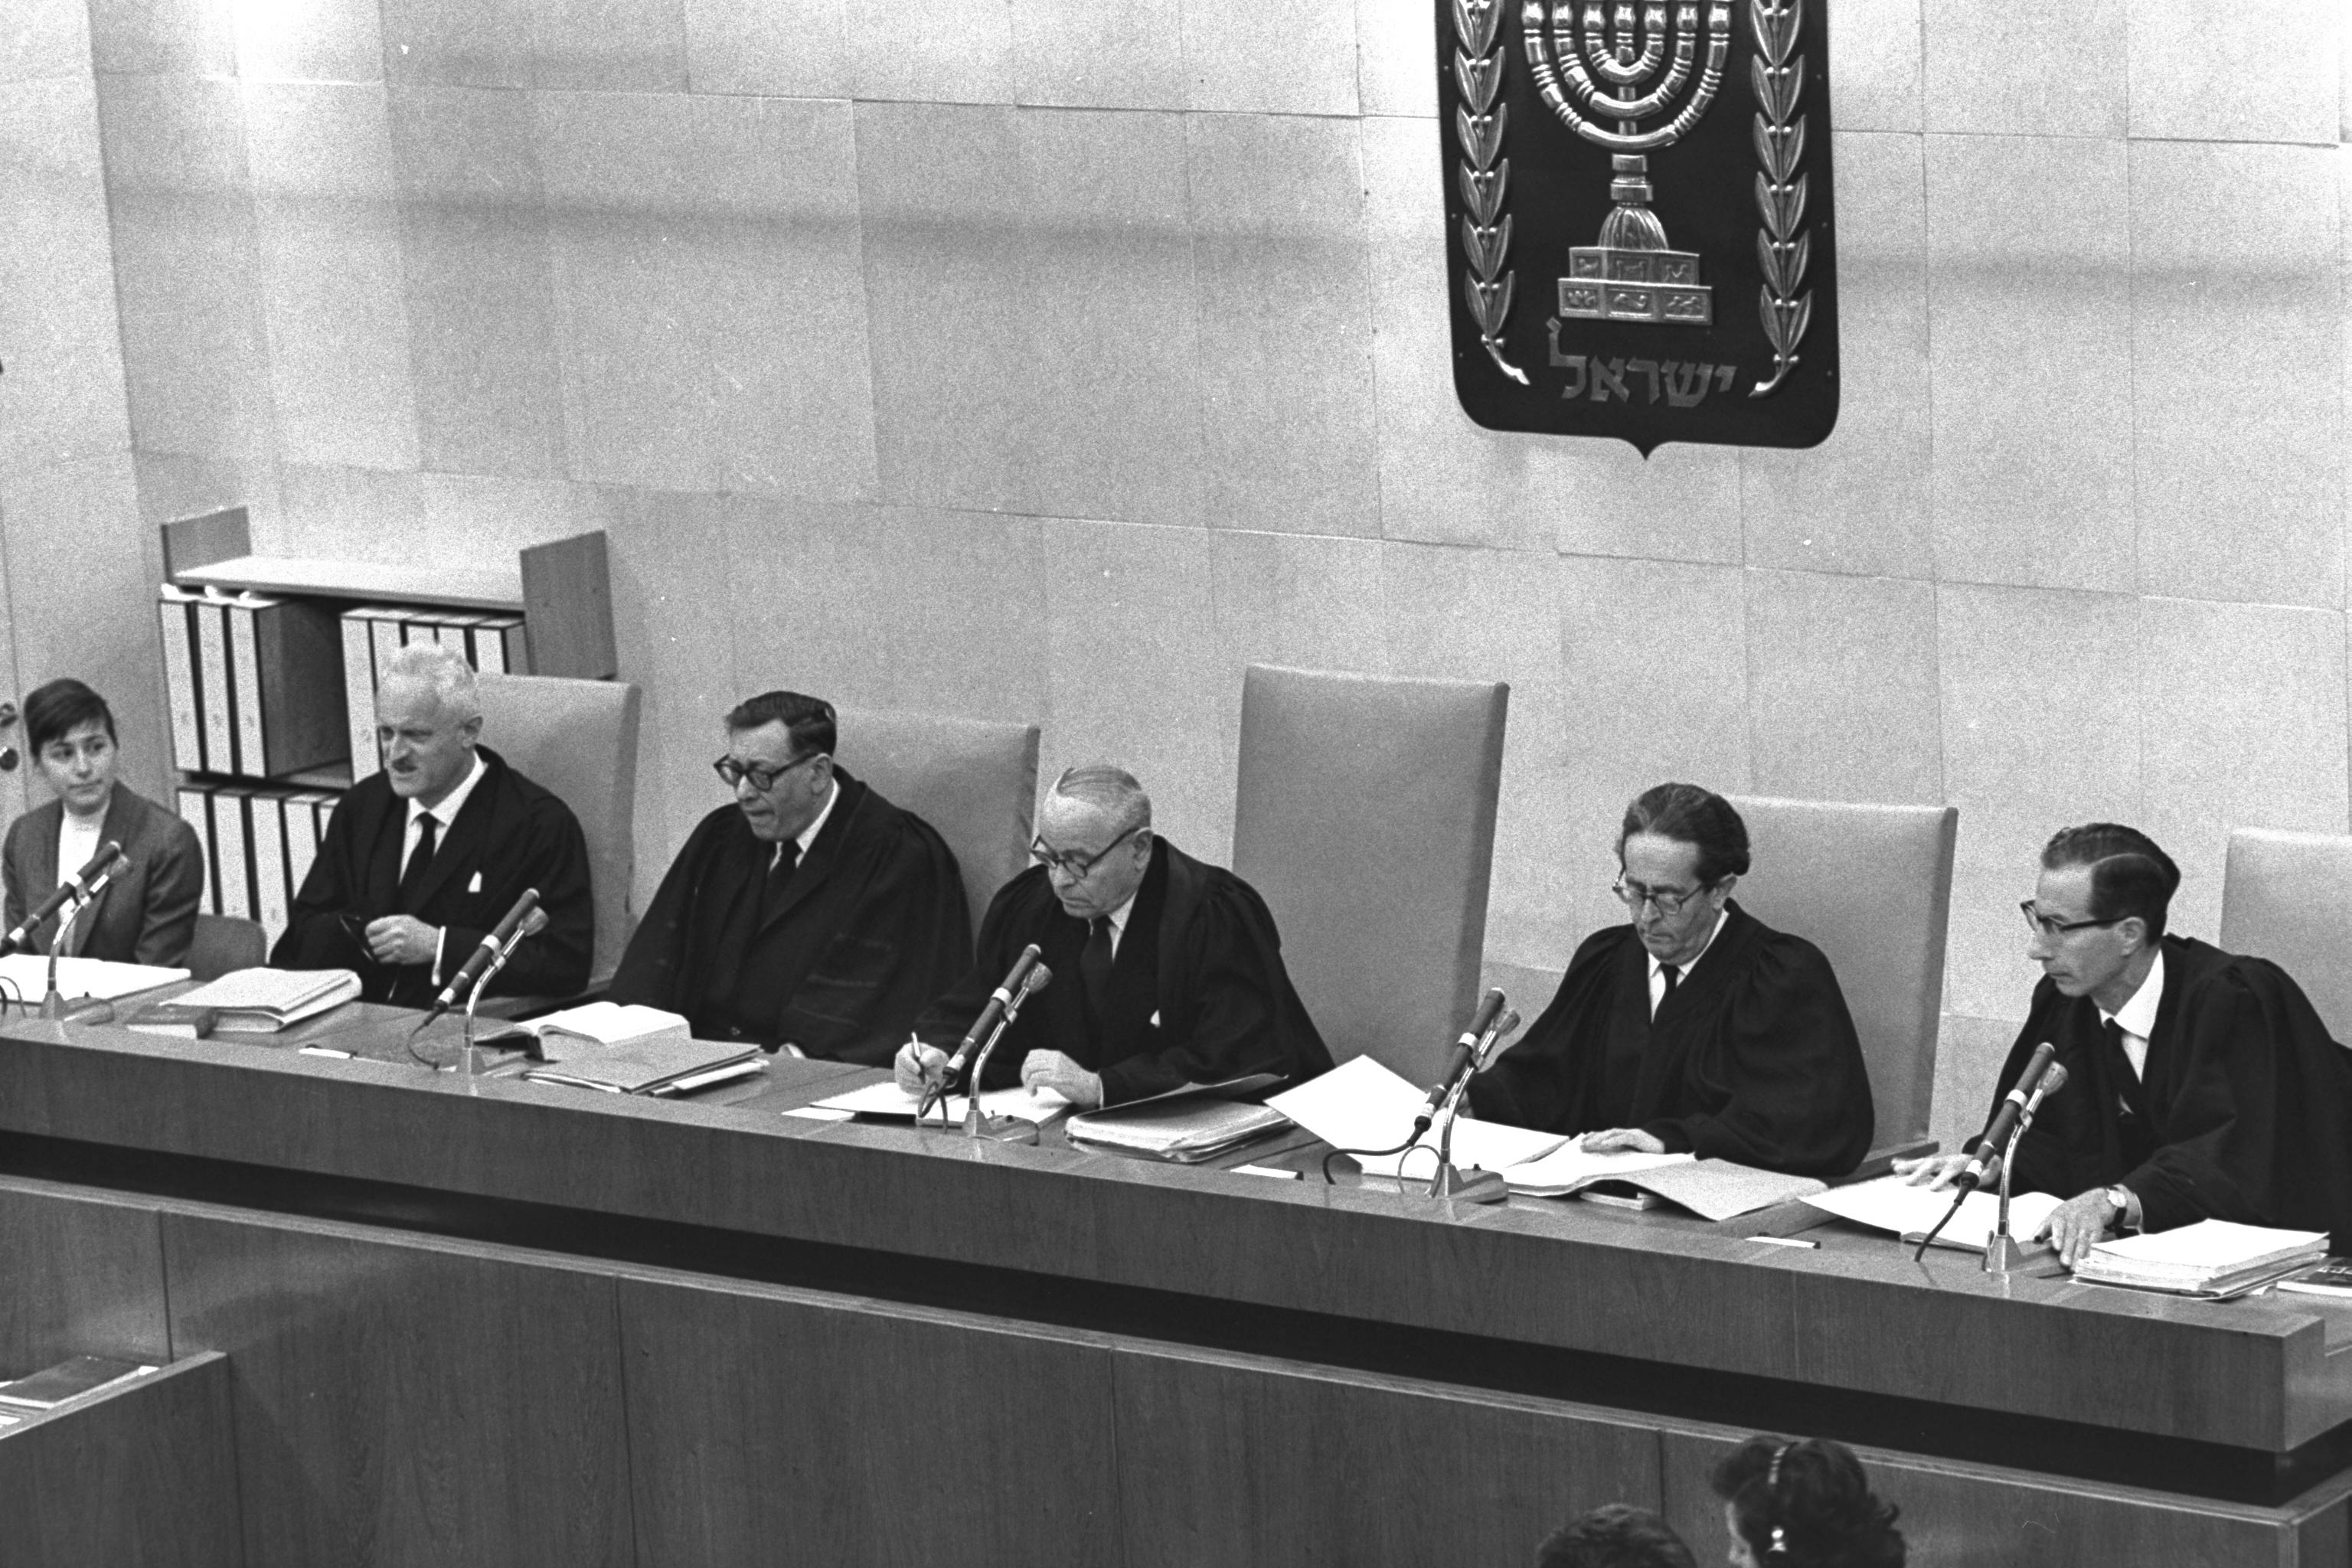 File:Flickr - Government Press Office (GPO) - The appeal of Nazi war criminal Adolf Eichmann.jpg - Wikimedia Commons